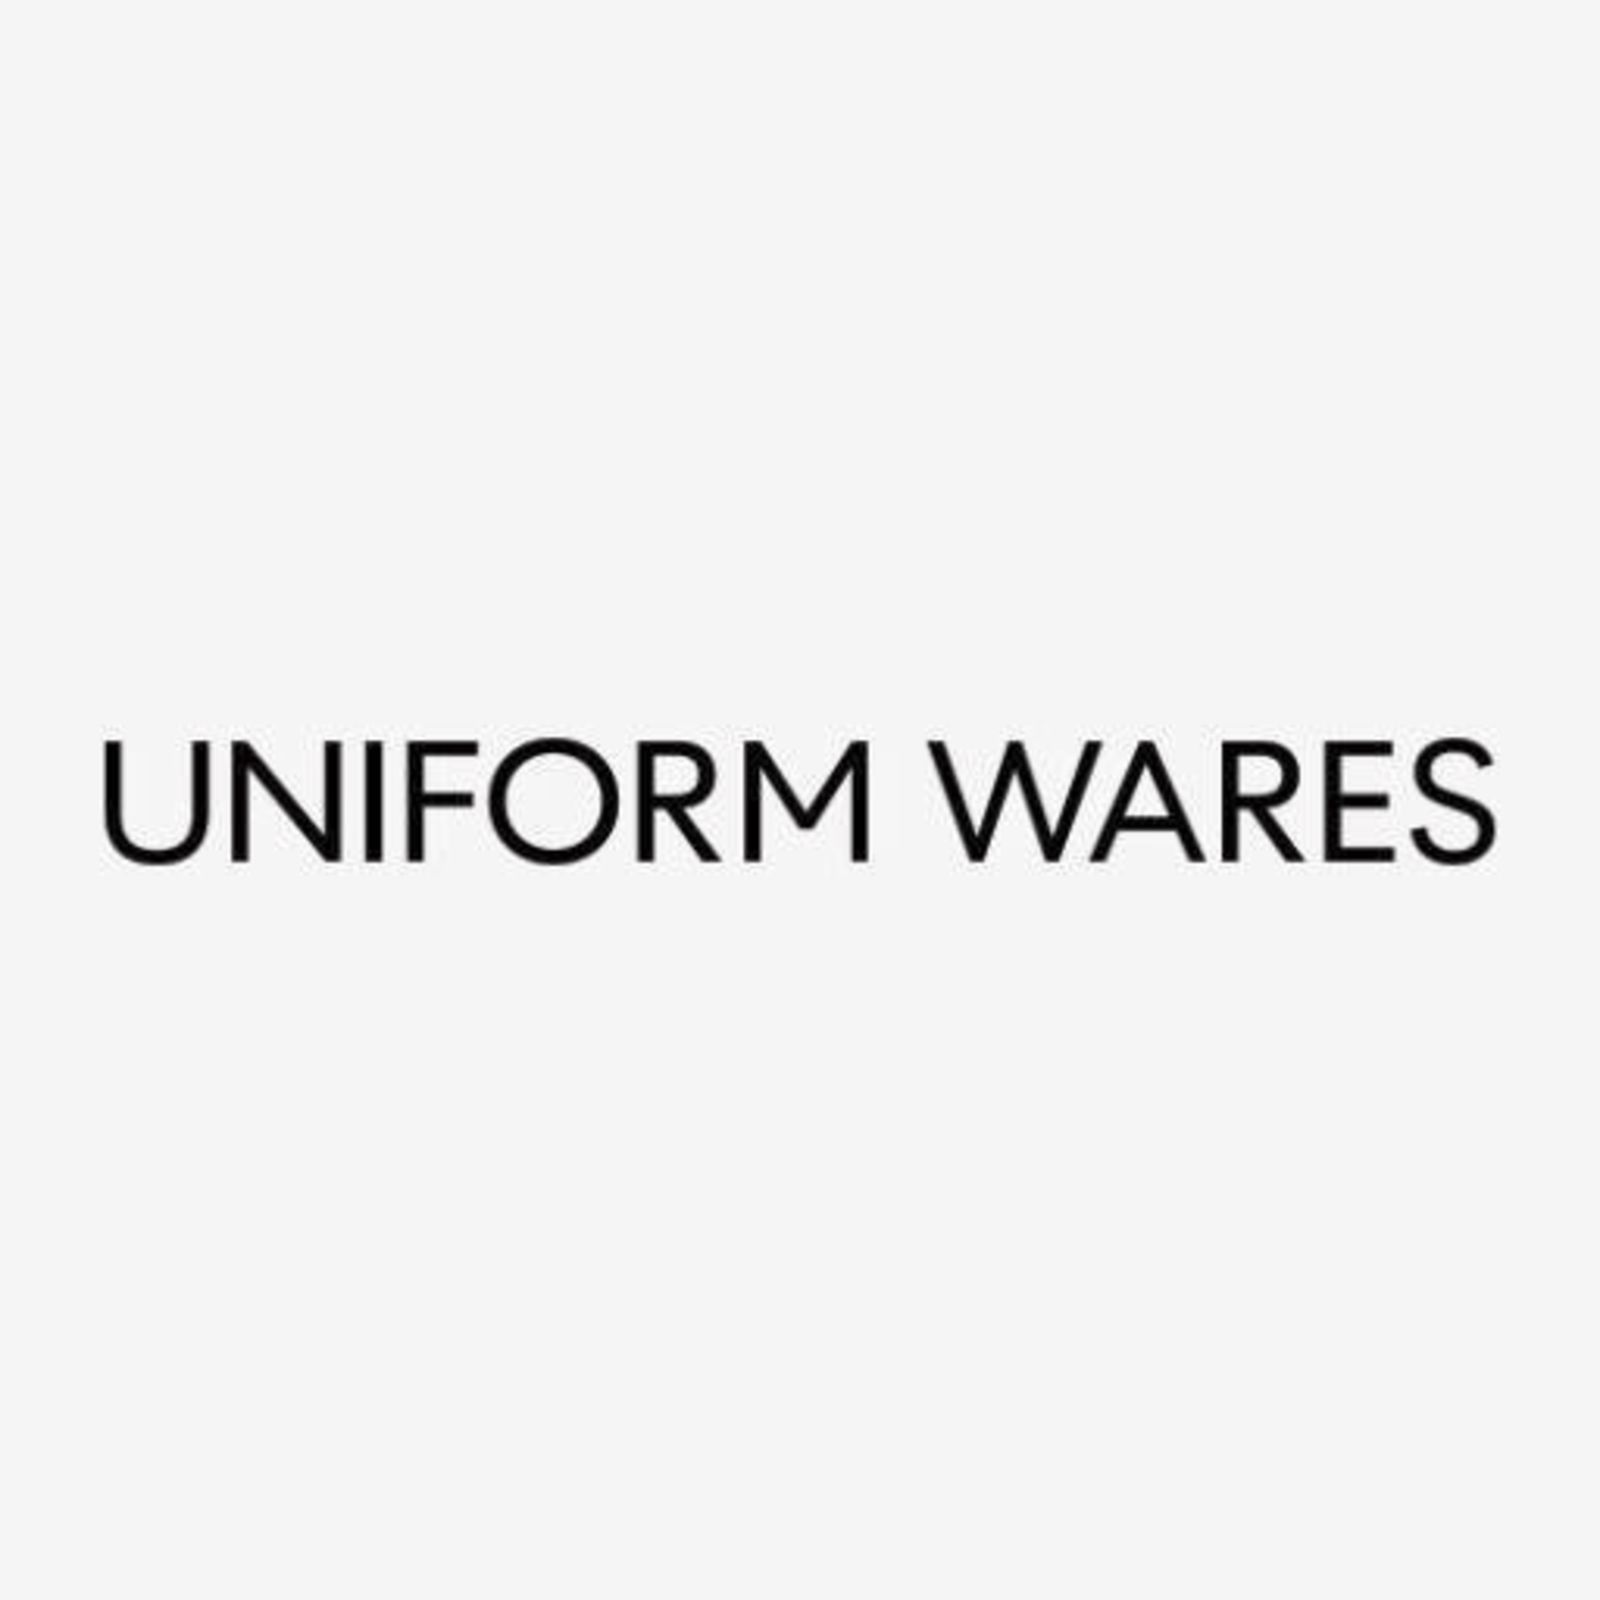 UNIFORM WARES